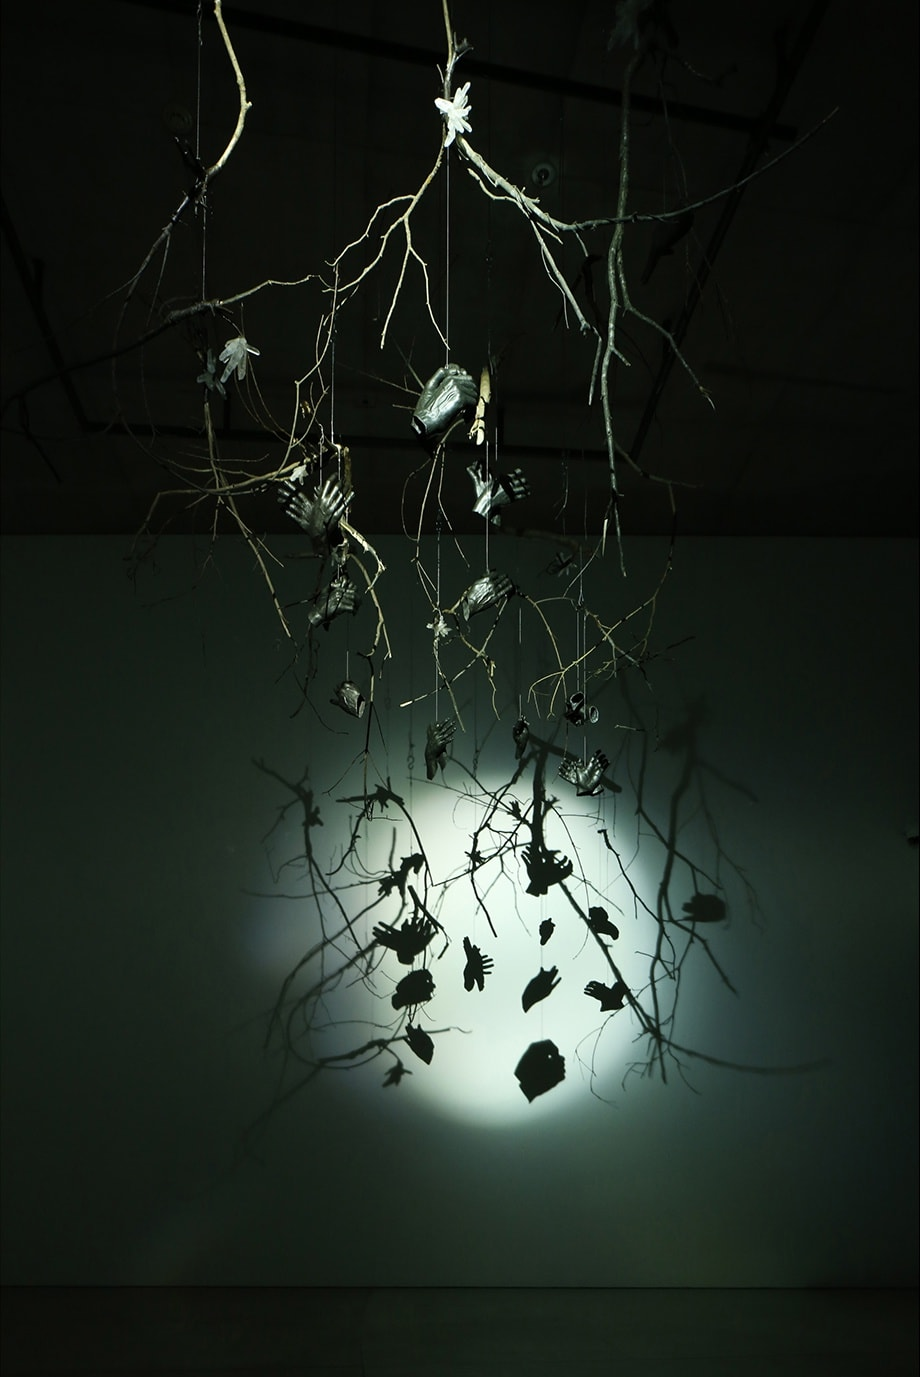 In a State of Suspension, 2017 . Aomori Contemporary Art Center, Aomori, Japan